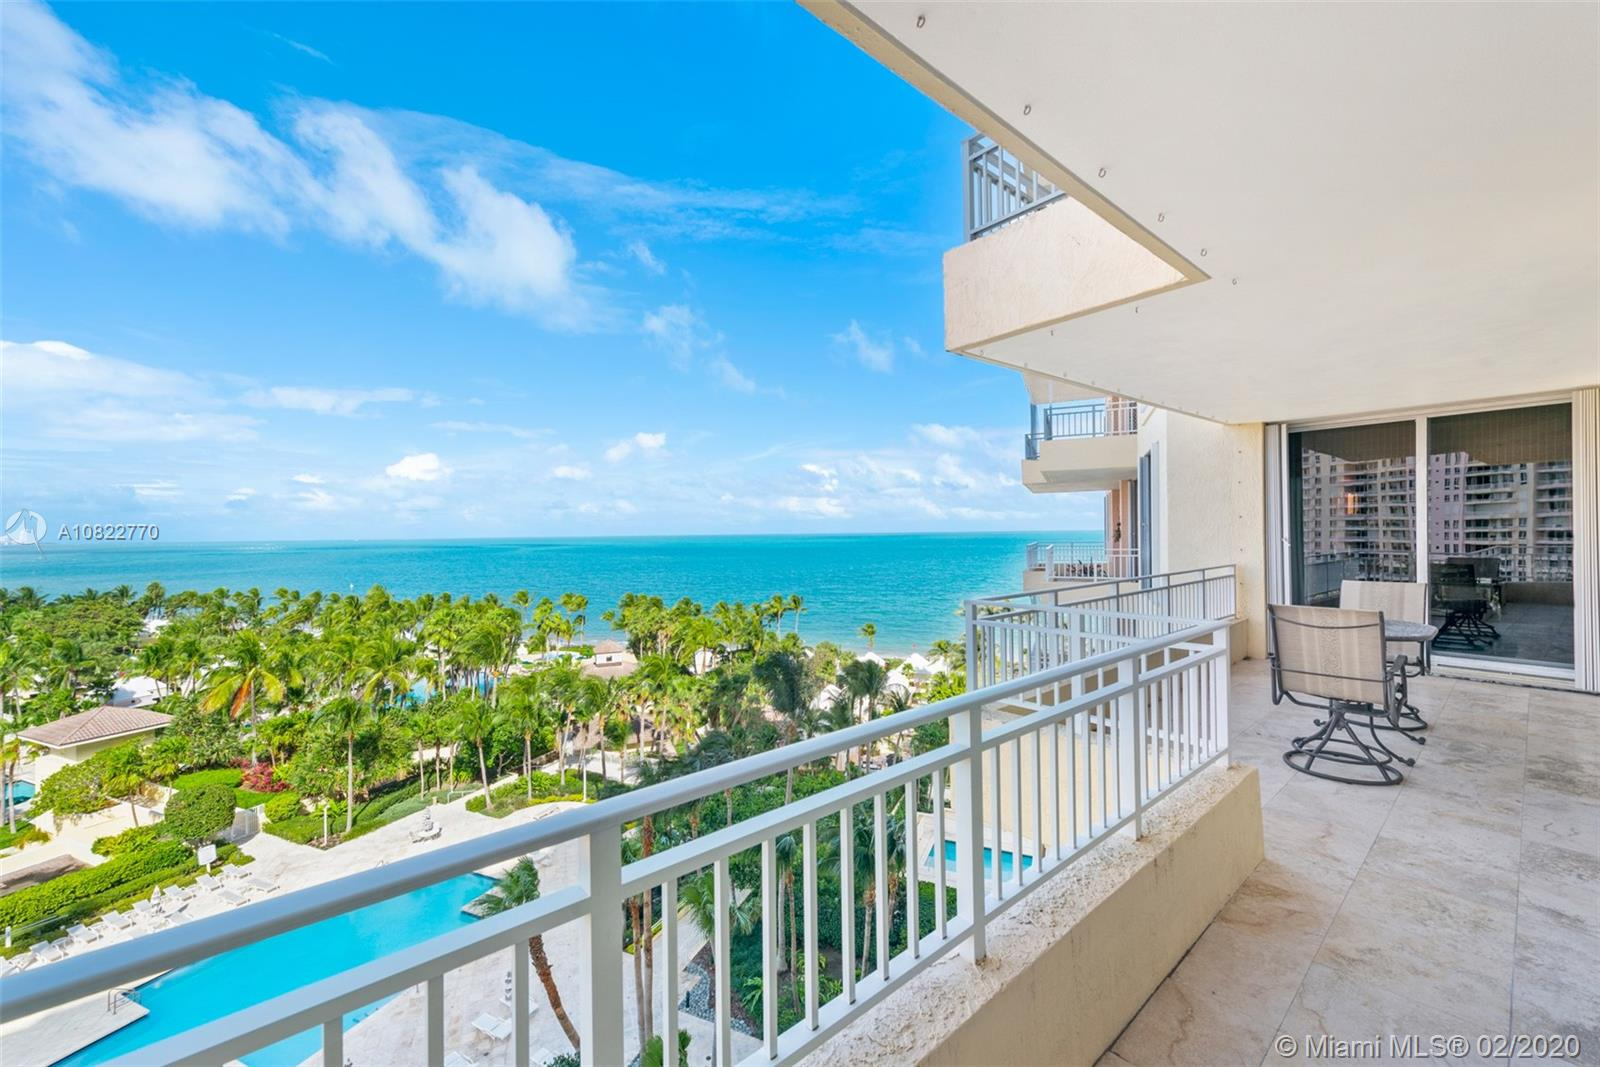 """Incredible floor plan and sought after """"E"""" model unit with 3,581 Sq Ft under A/C.  This is the perfect height where you can enjoy the breathtaking views of the ocean and bay plus all the garden views Ocean Club has to offer with terraces on both sides.  4 bedrooms plus staff quarters and 4 ½ bathrooms make this a perfect home for any family.  Indulge in the lifestyle where you are steps away from the beach, have access to tennis courts, pools, gym, spa, children's playground, concierge, security, valet service and so much more.  Easy to show."""